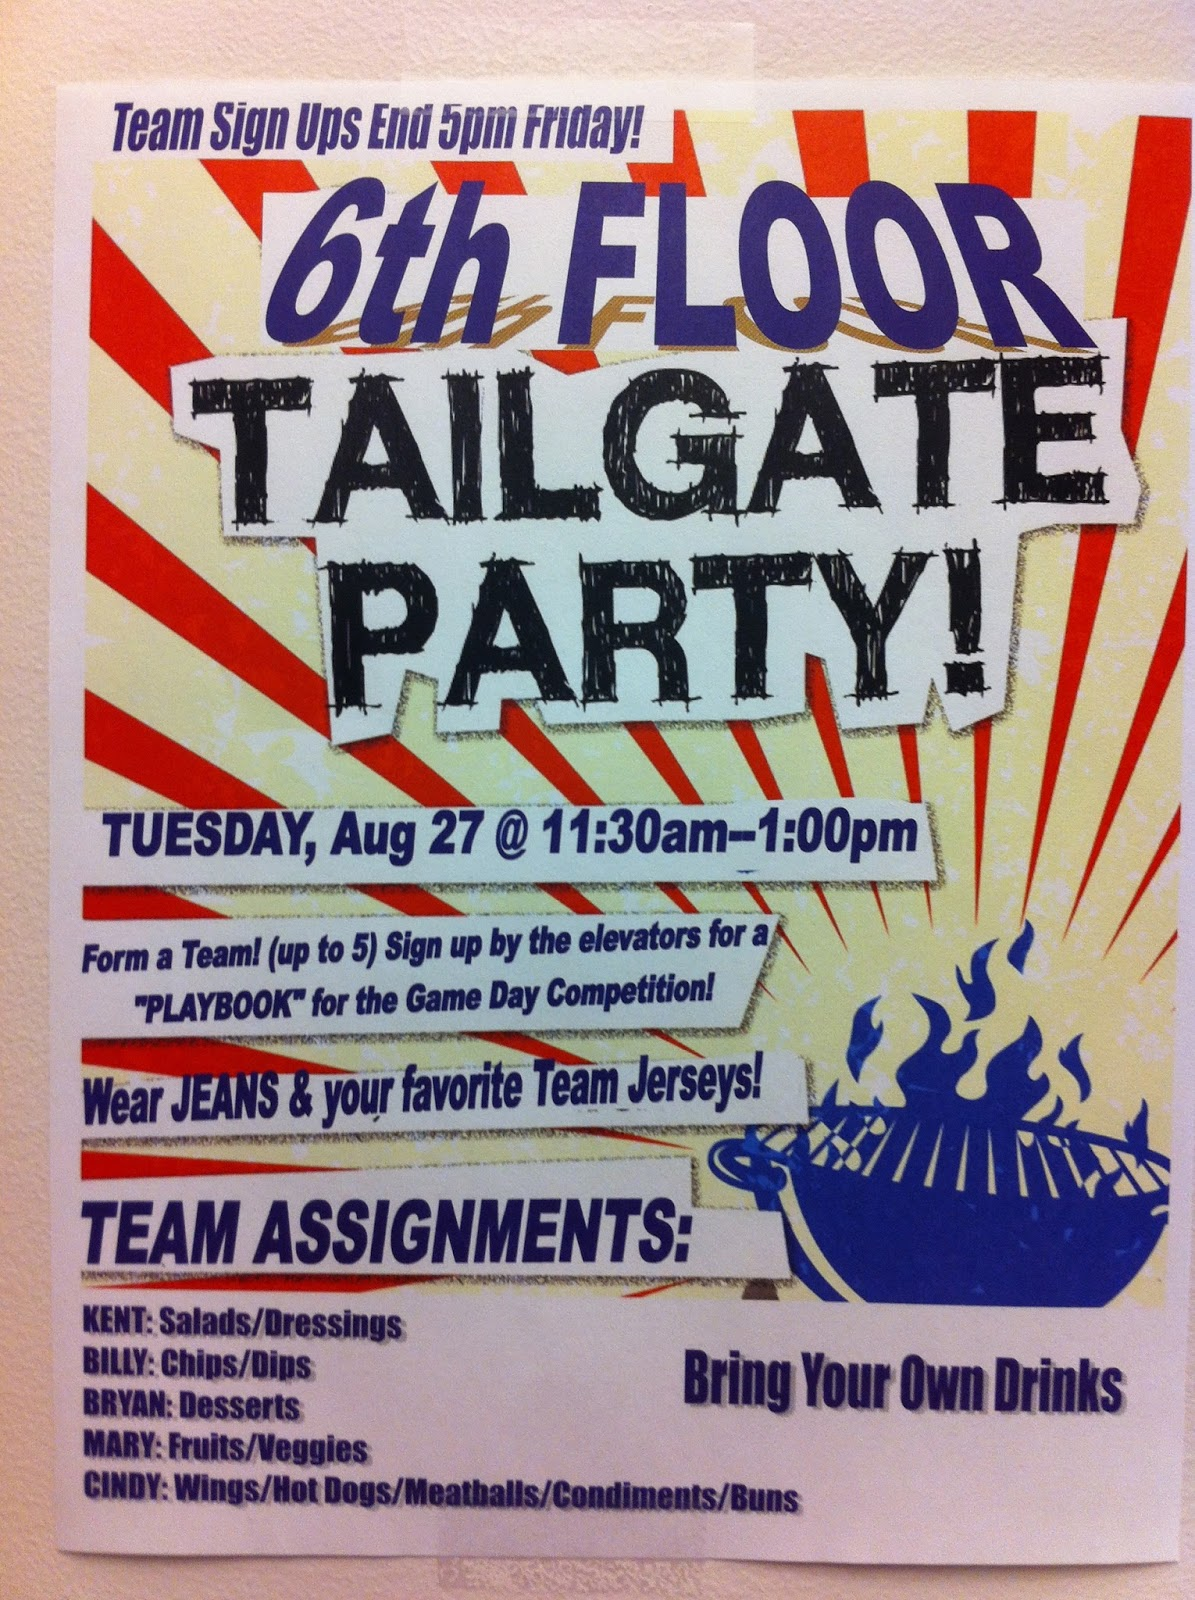 scotty watty doodle all the day the 2013 6th floor tailgate party last week a co worker asked if i could make a flyer for an upcoming floor office party sure i like doing that kind of thing